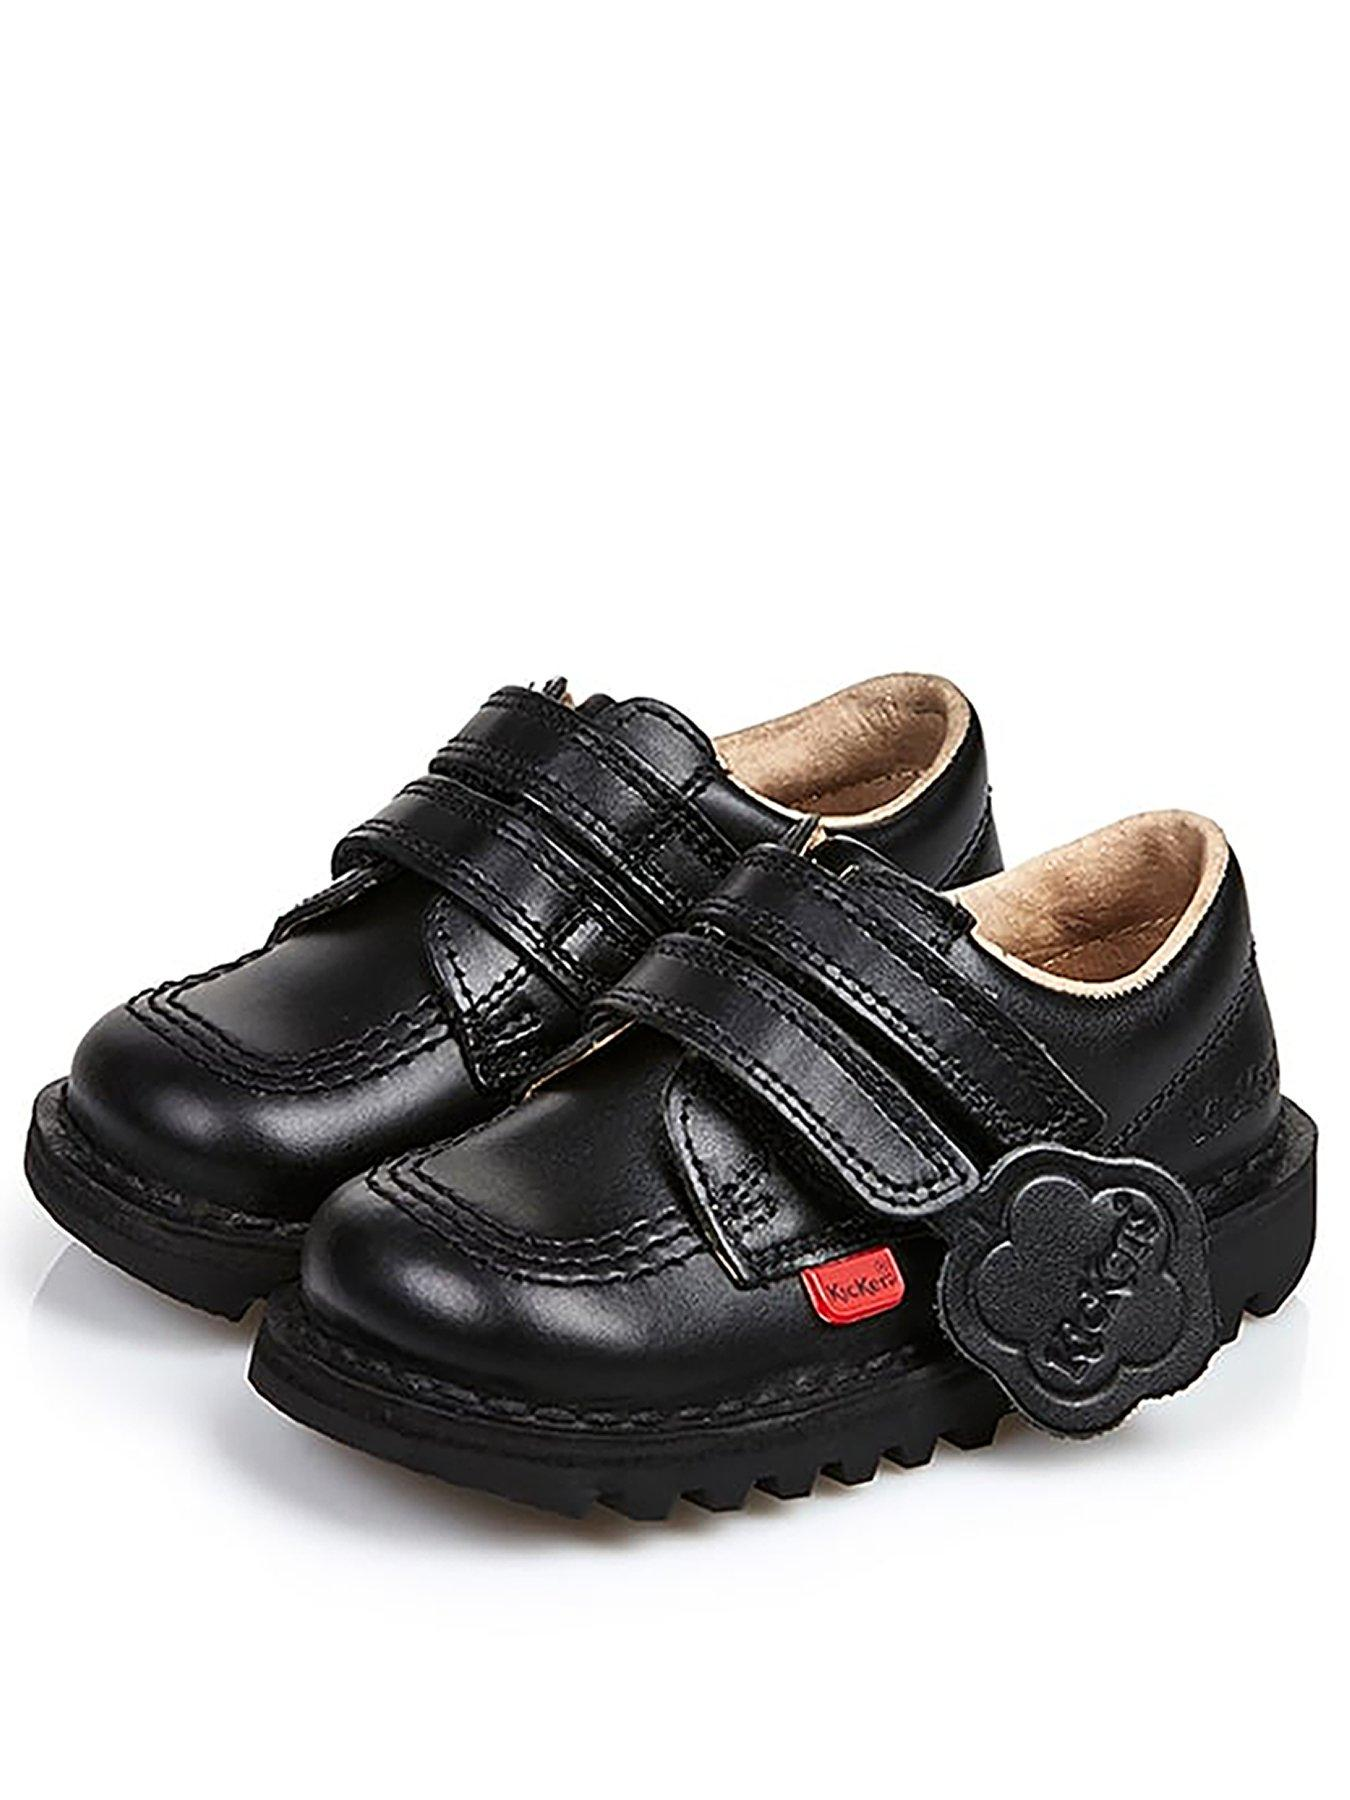 Infant Girls Kickers Fragma Pop Shoe In Black-Hook And Loop Fastening-Open